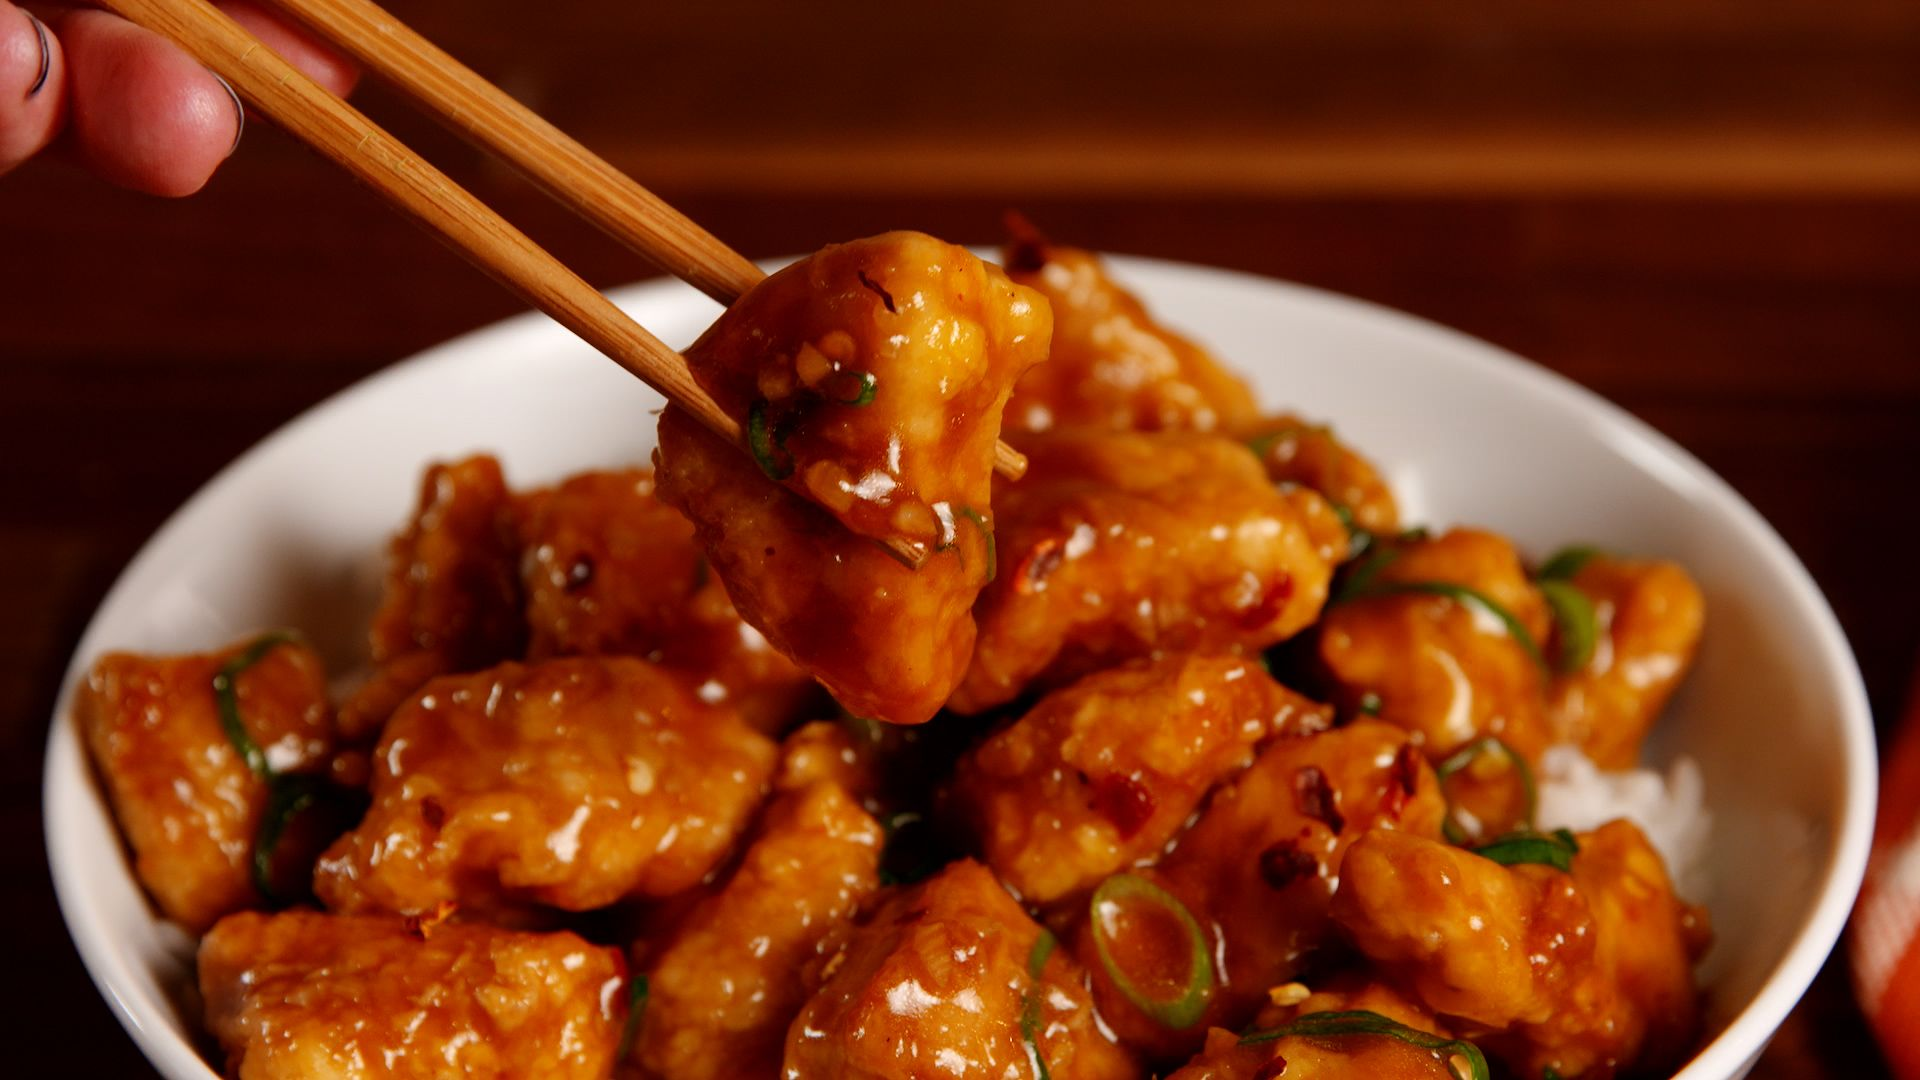 Great Asian Cuisine Dishes